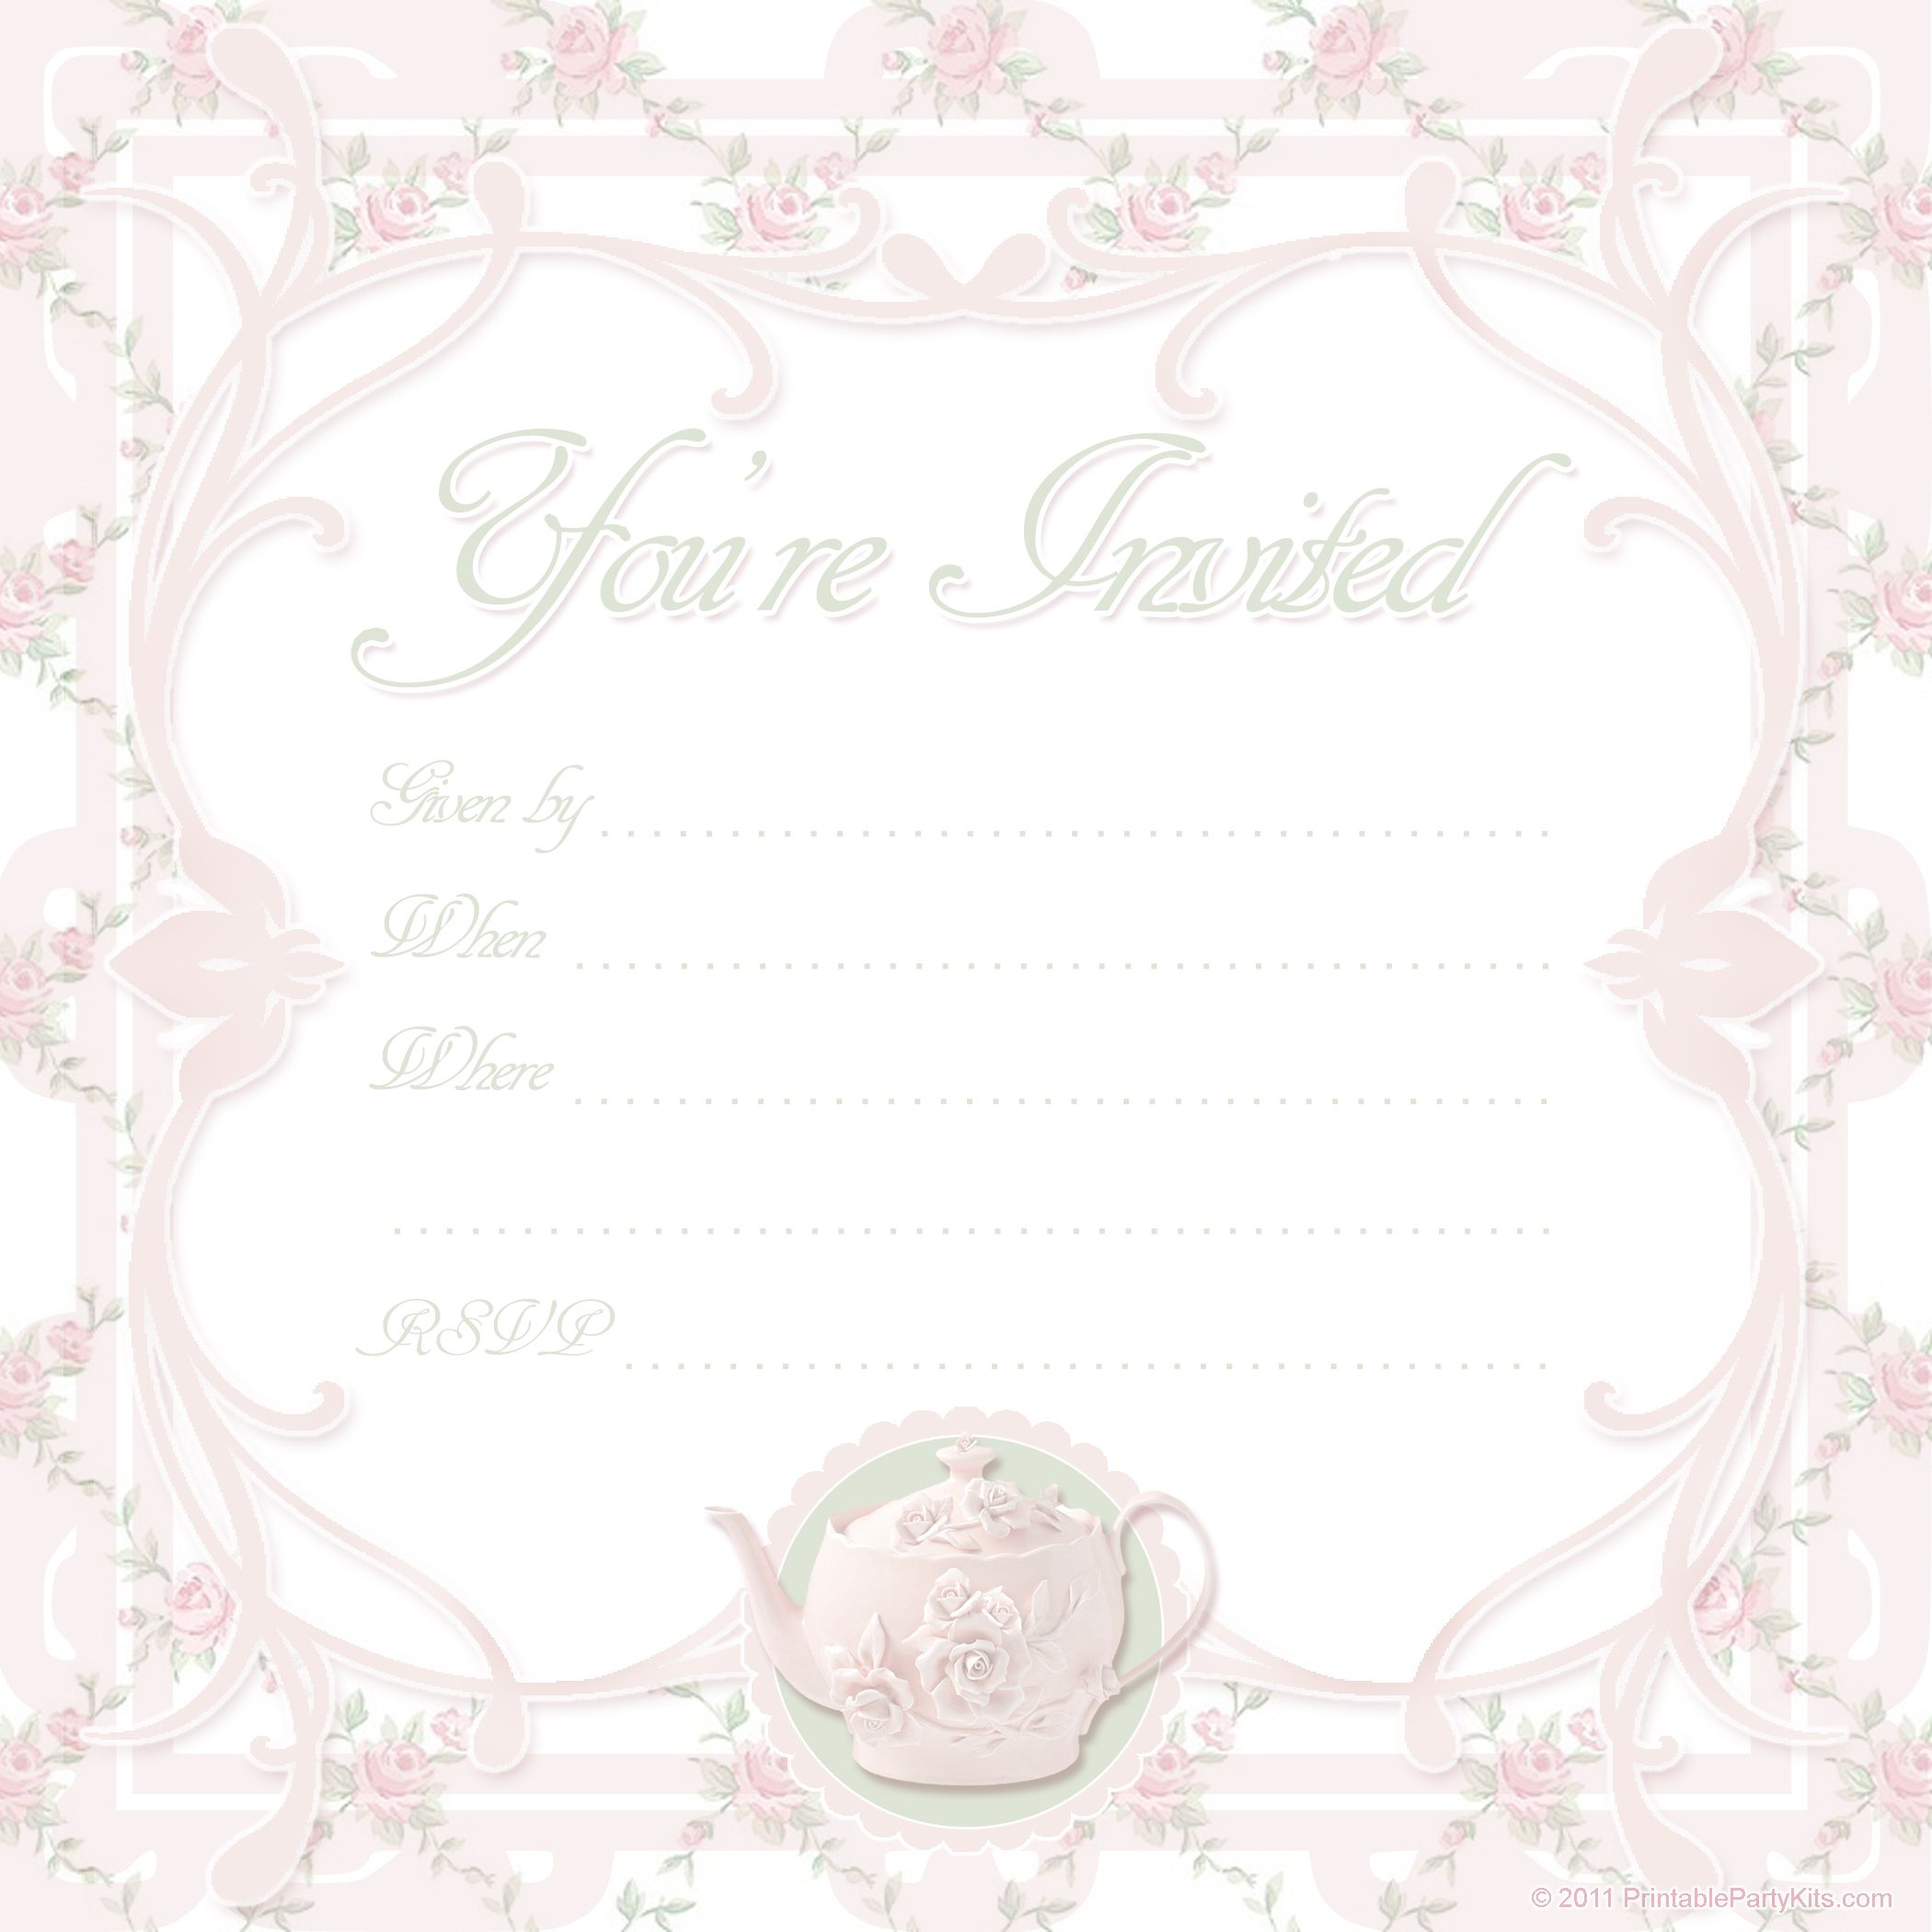 Free Printable Tea Party Invite Template  Printable Party Kits